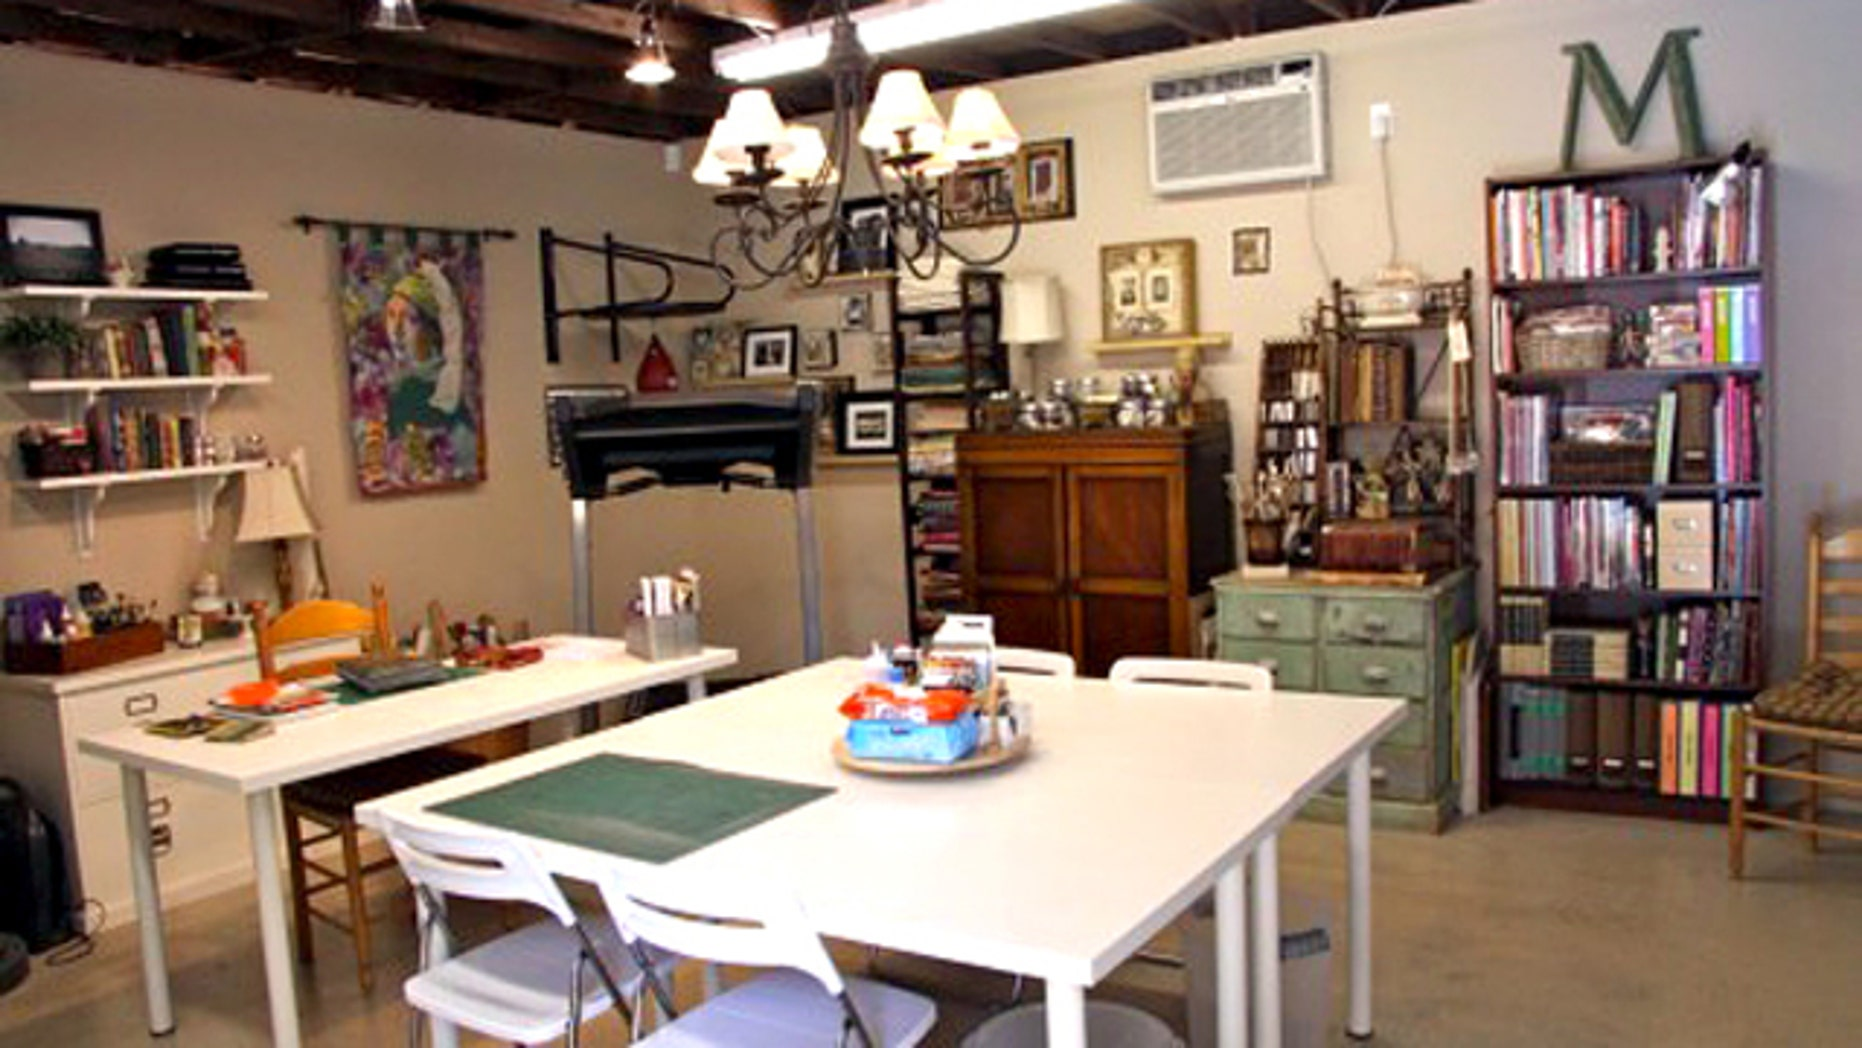 By cleaning out her garage in Sherman Oaks, Calif., Mikki Lesowitz-Soliday made room for craft tables, a sewing station and plenty of art supplies.